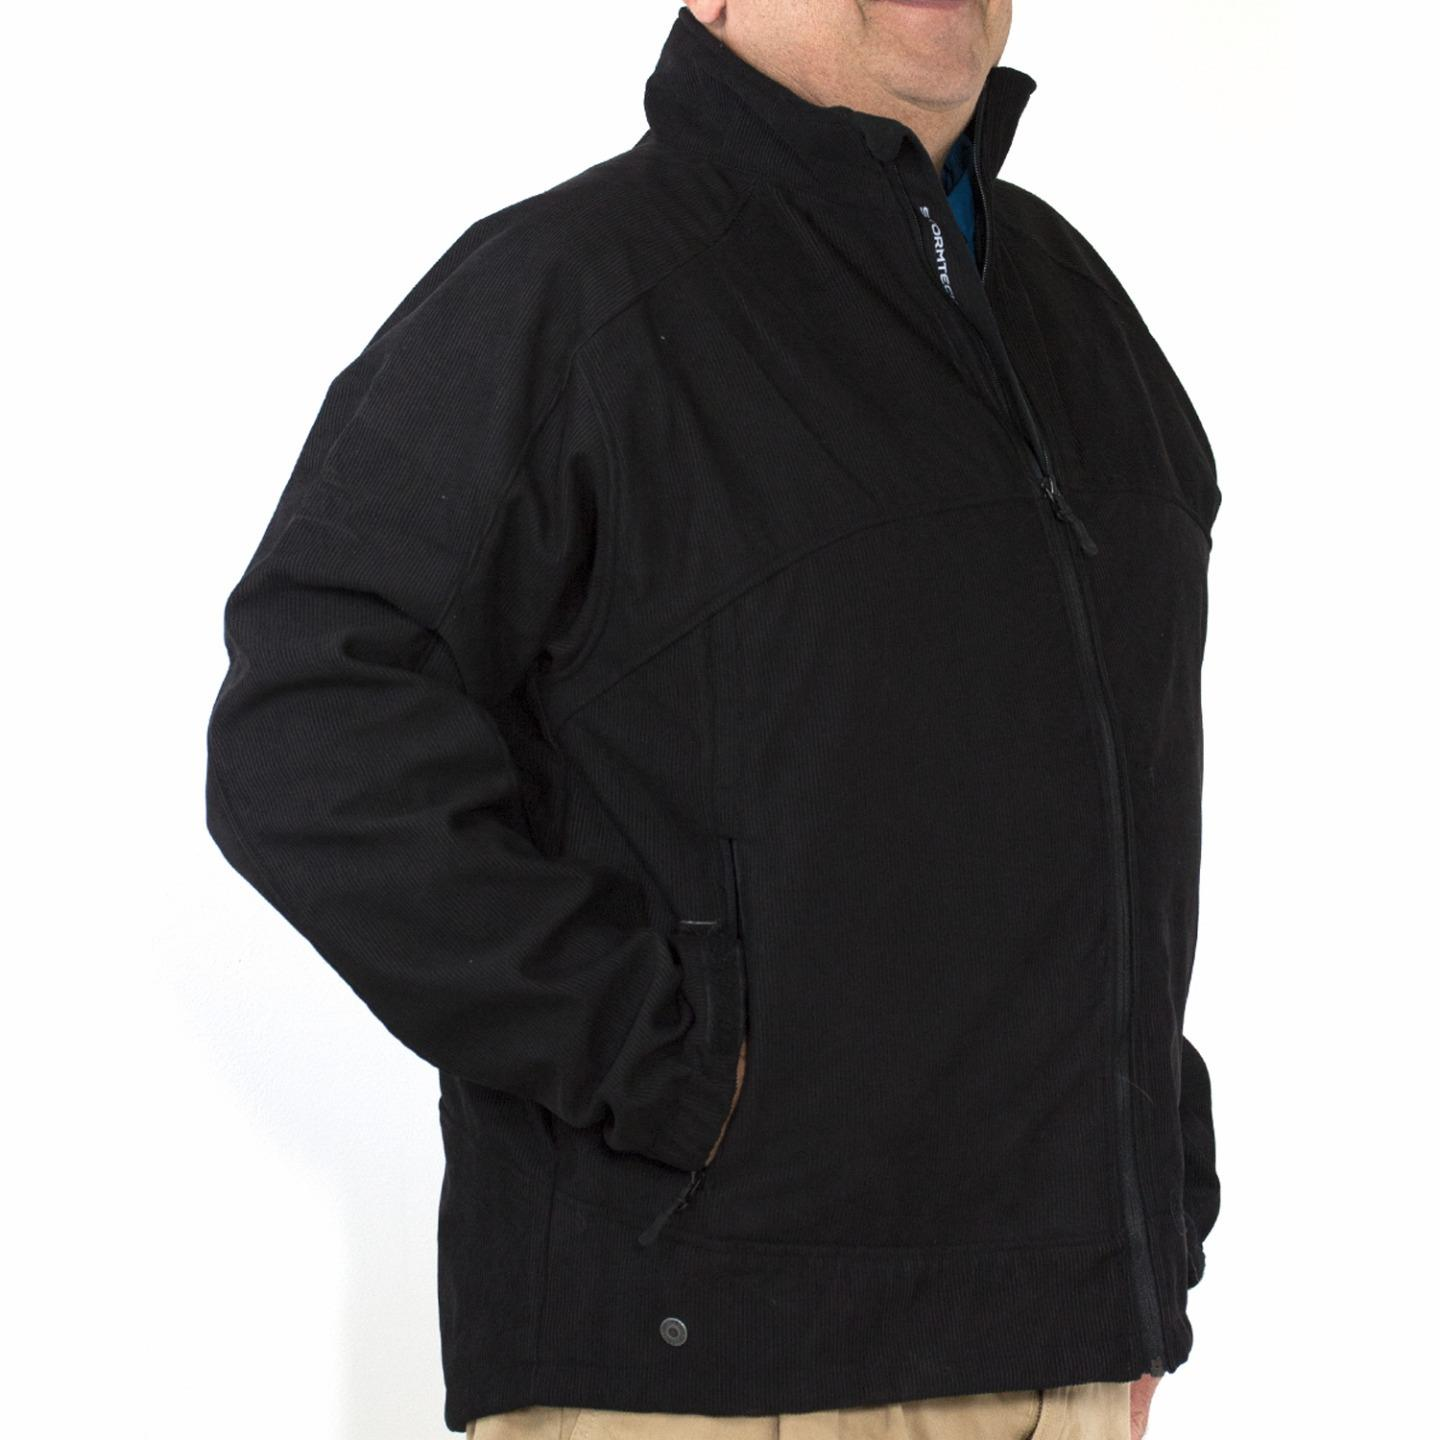 Mens Stormtech BTX-2 Corduroy H2XTREME Waterproof Jacket Black 2XL